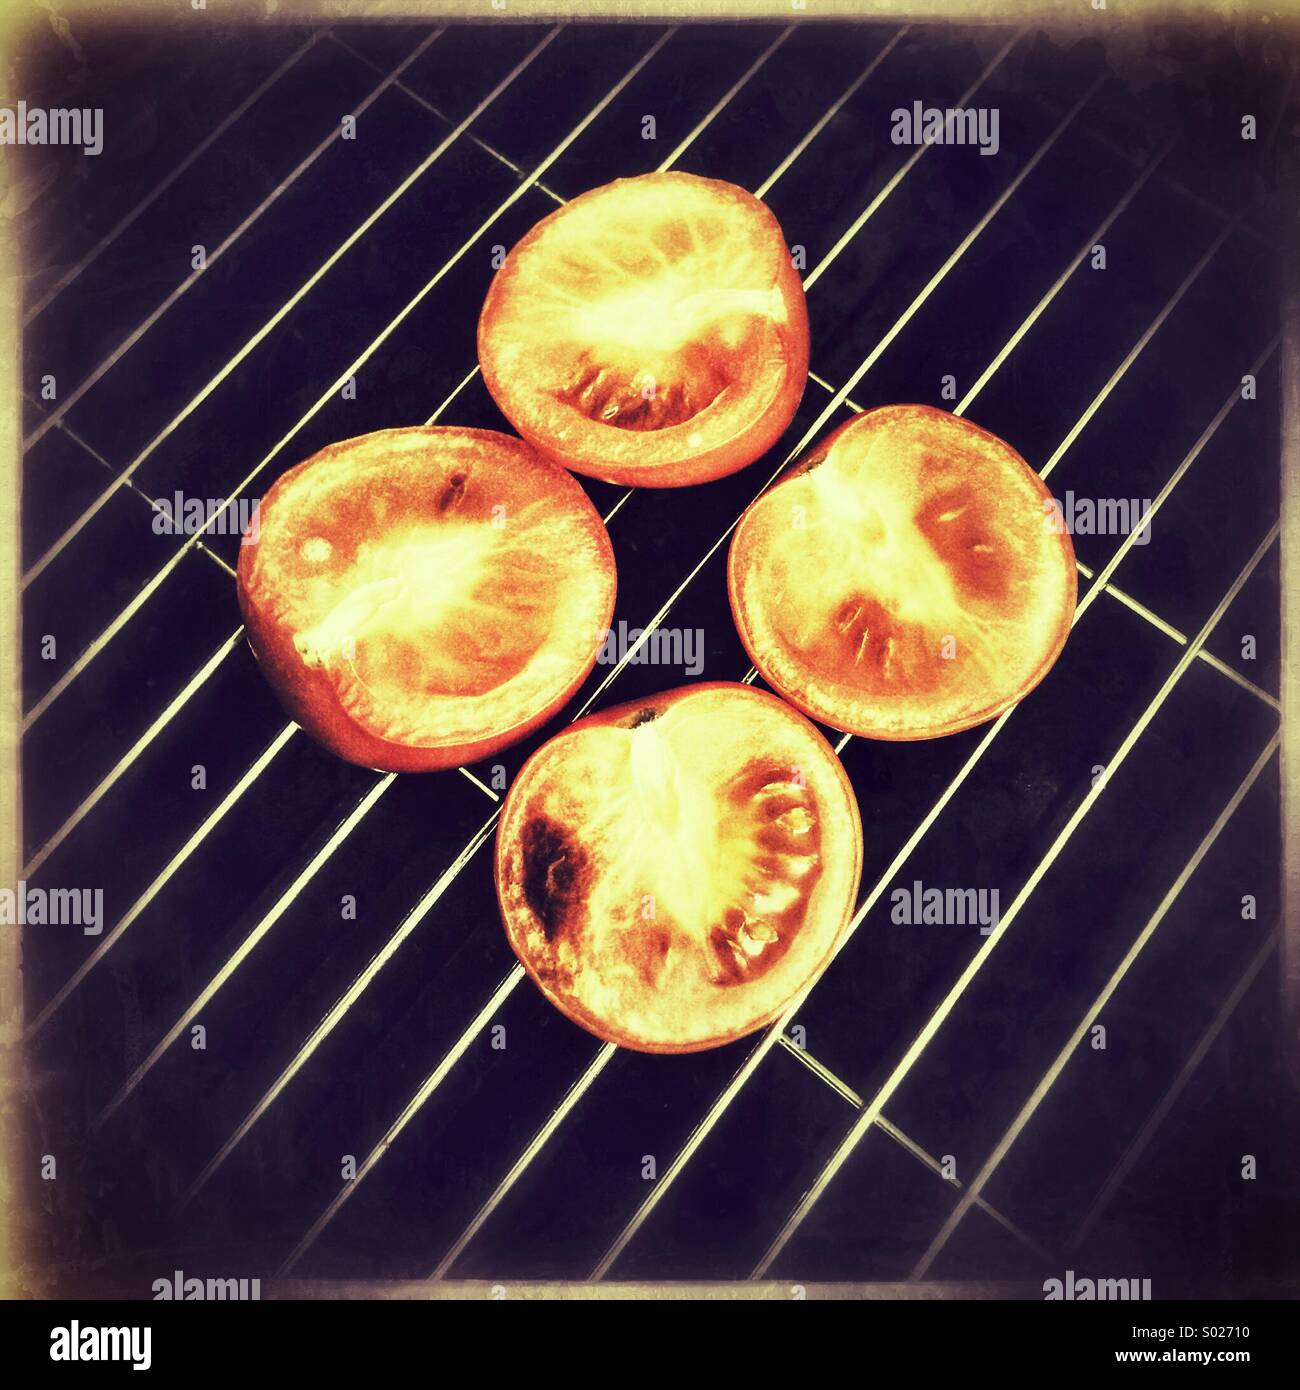 Tomatoes on grill pan Stock Photo